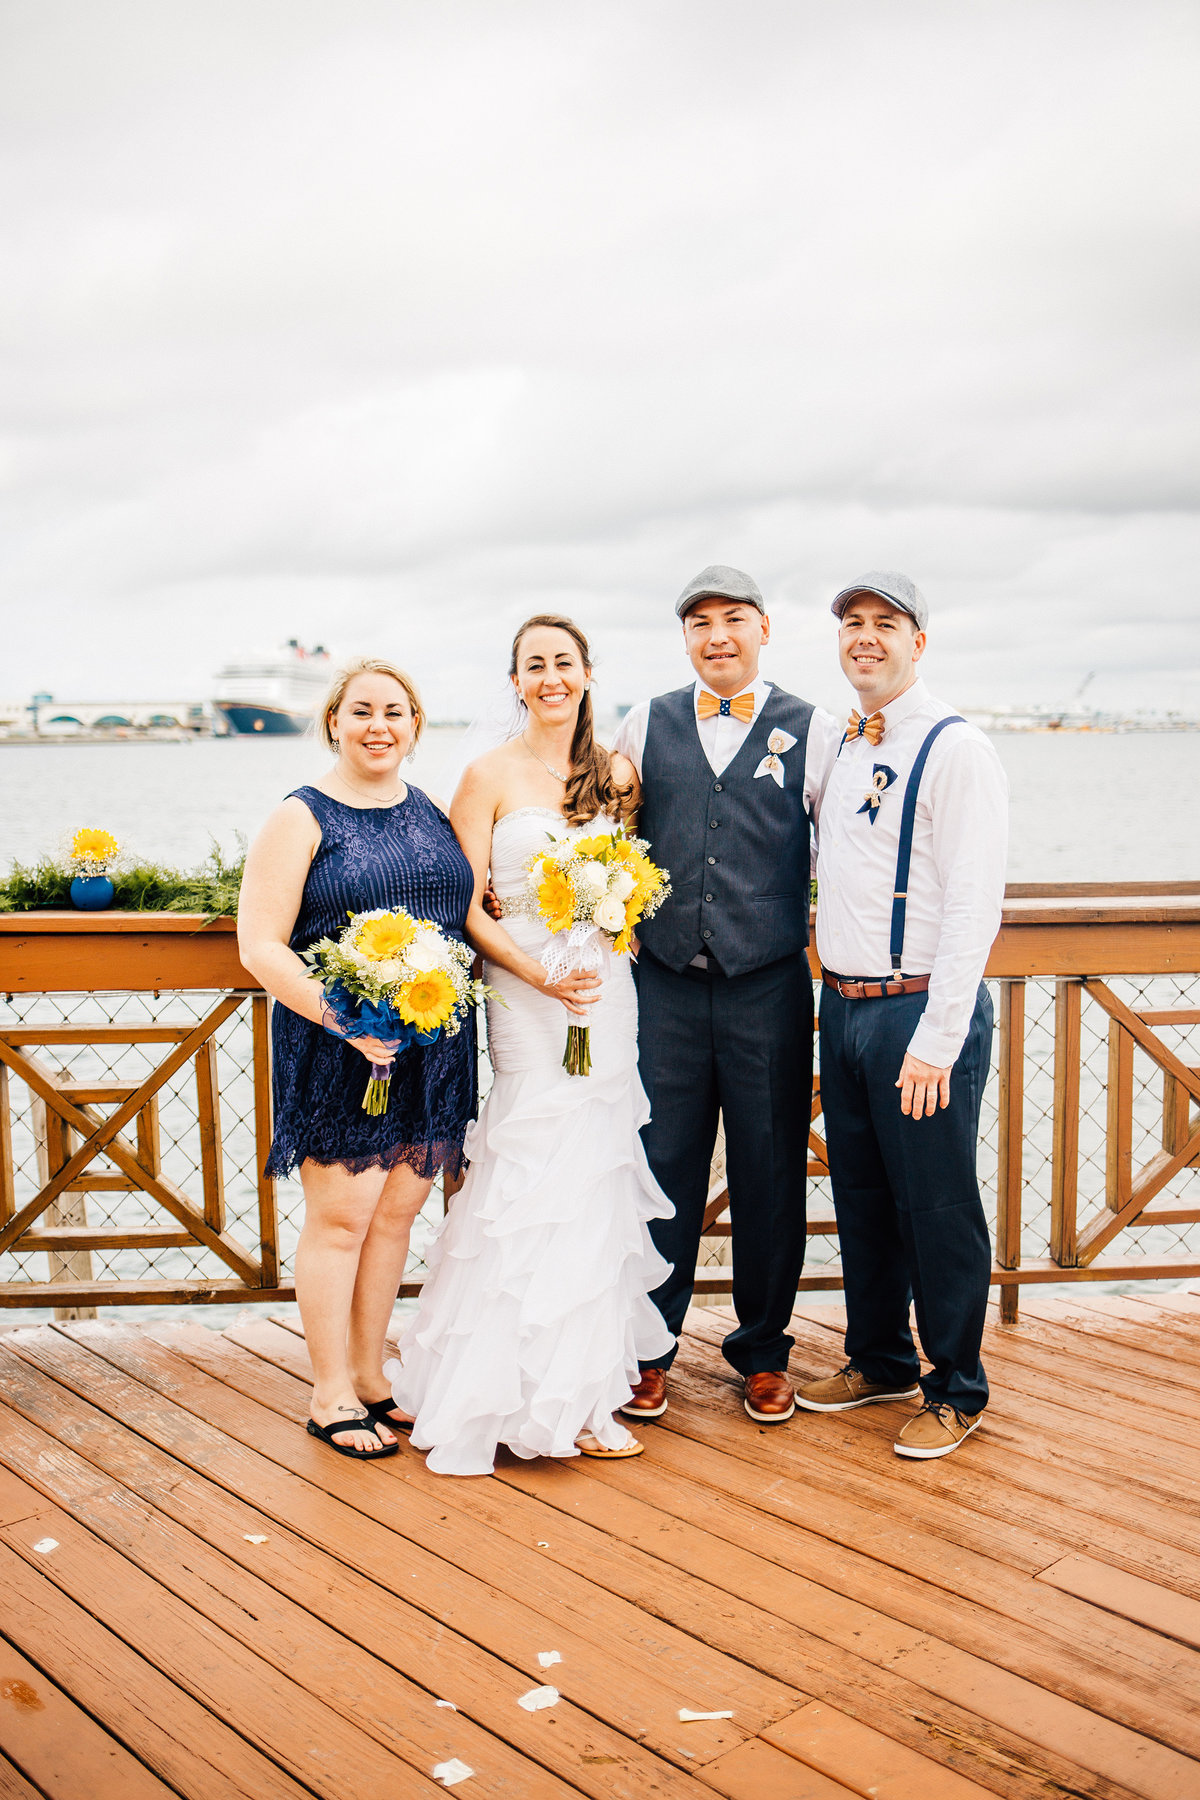 Kimberly_Hoyle_Photography_Marrero_Millikens_Reef_Wedding-60